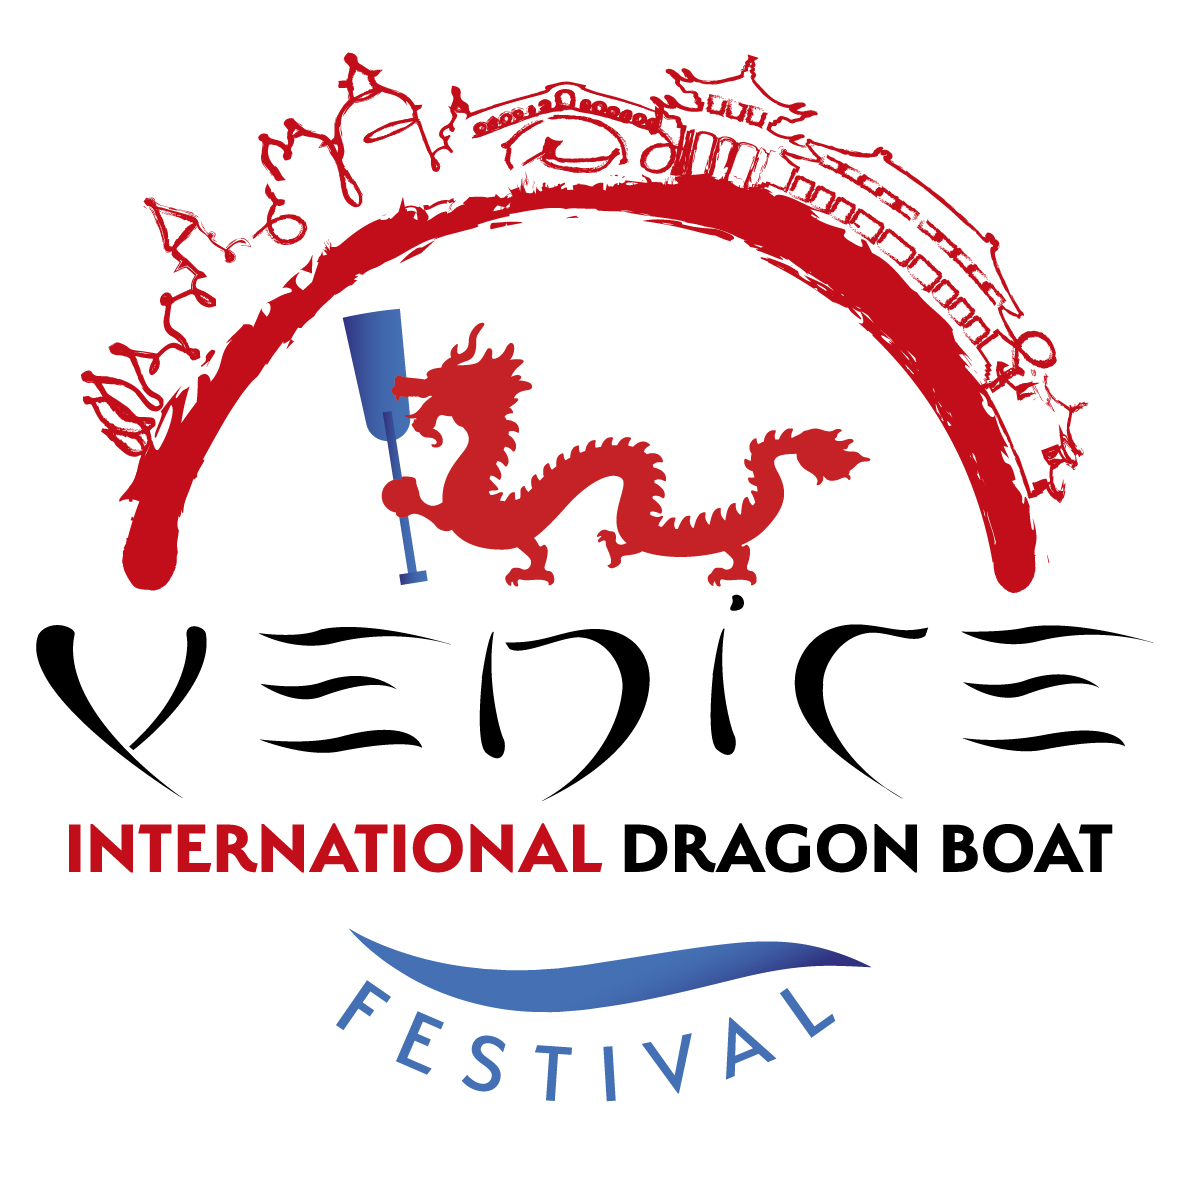 VENICE INTERNATIONAL DRAGON BOAT FESTIVAL & VOGALONGA 2020